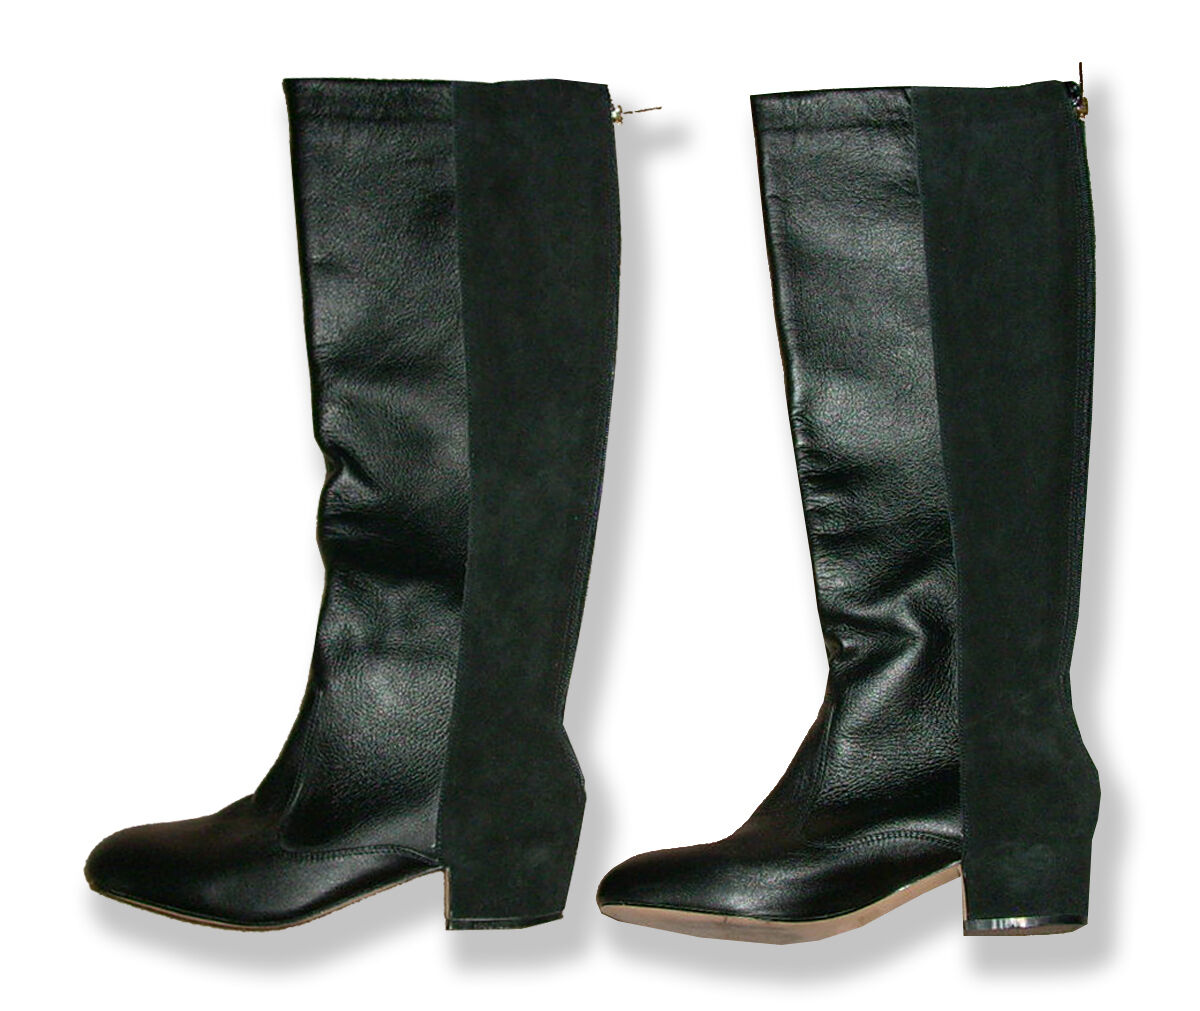 Gorgeous Black Suede and Leather Knee High Boots w/Covered Heel-10B-Fits 9-10